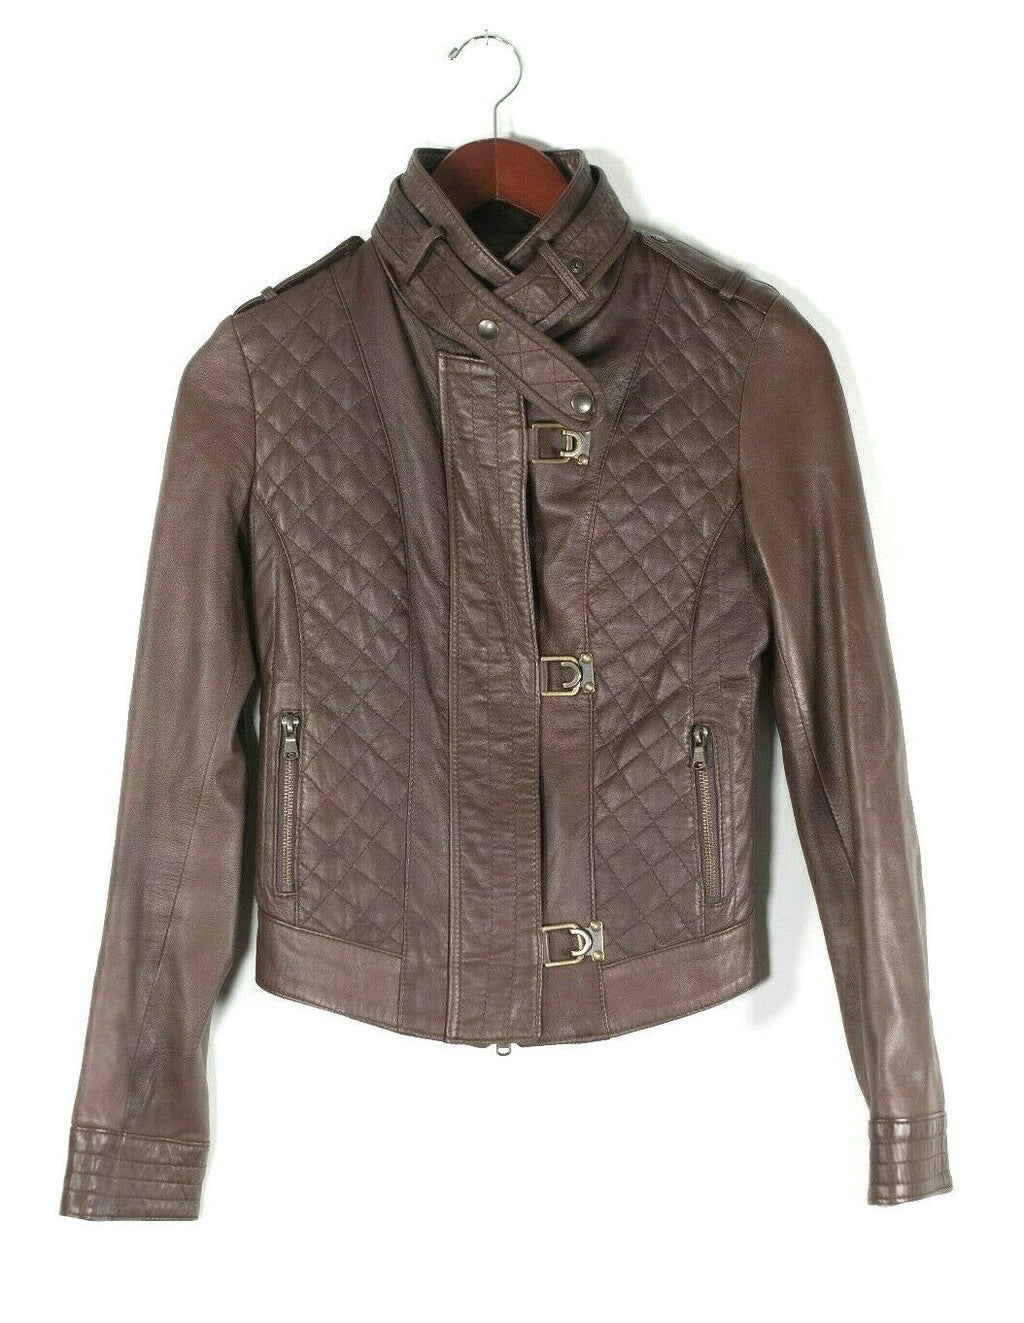 A. Raspini Womens Size 40 Small Brown Motorcycle Jacket Short Quilted Leather